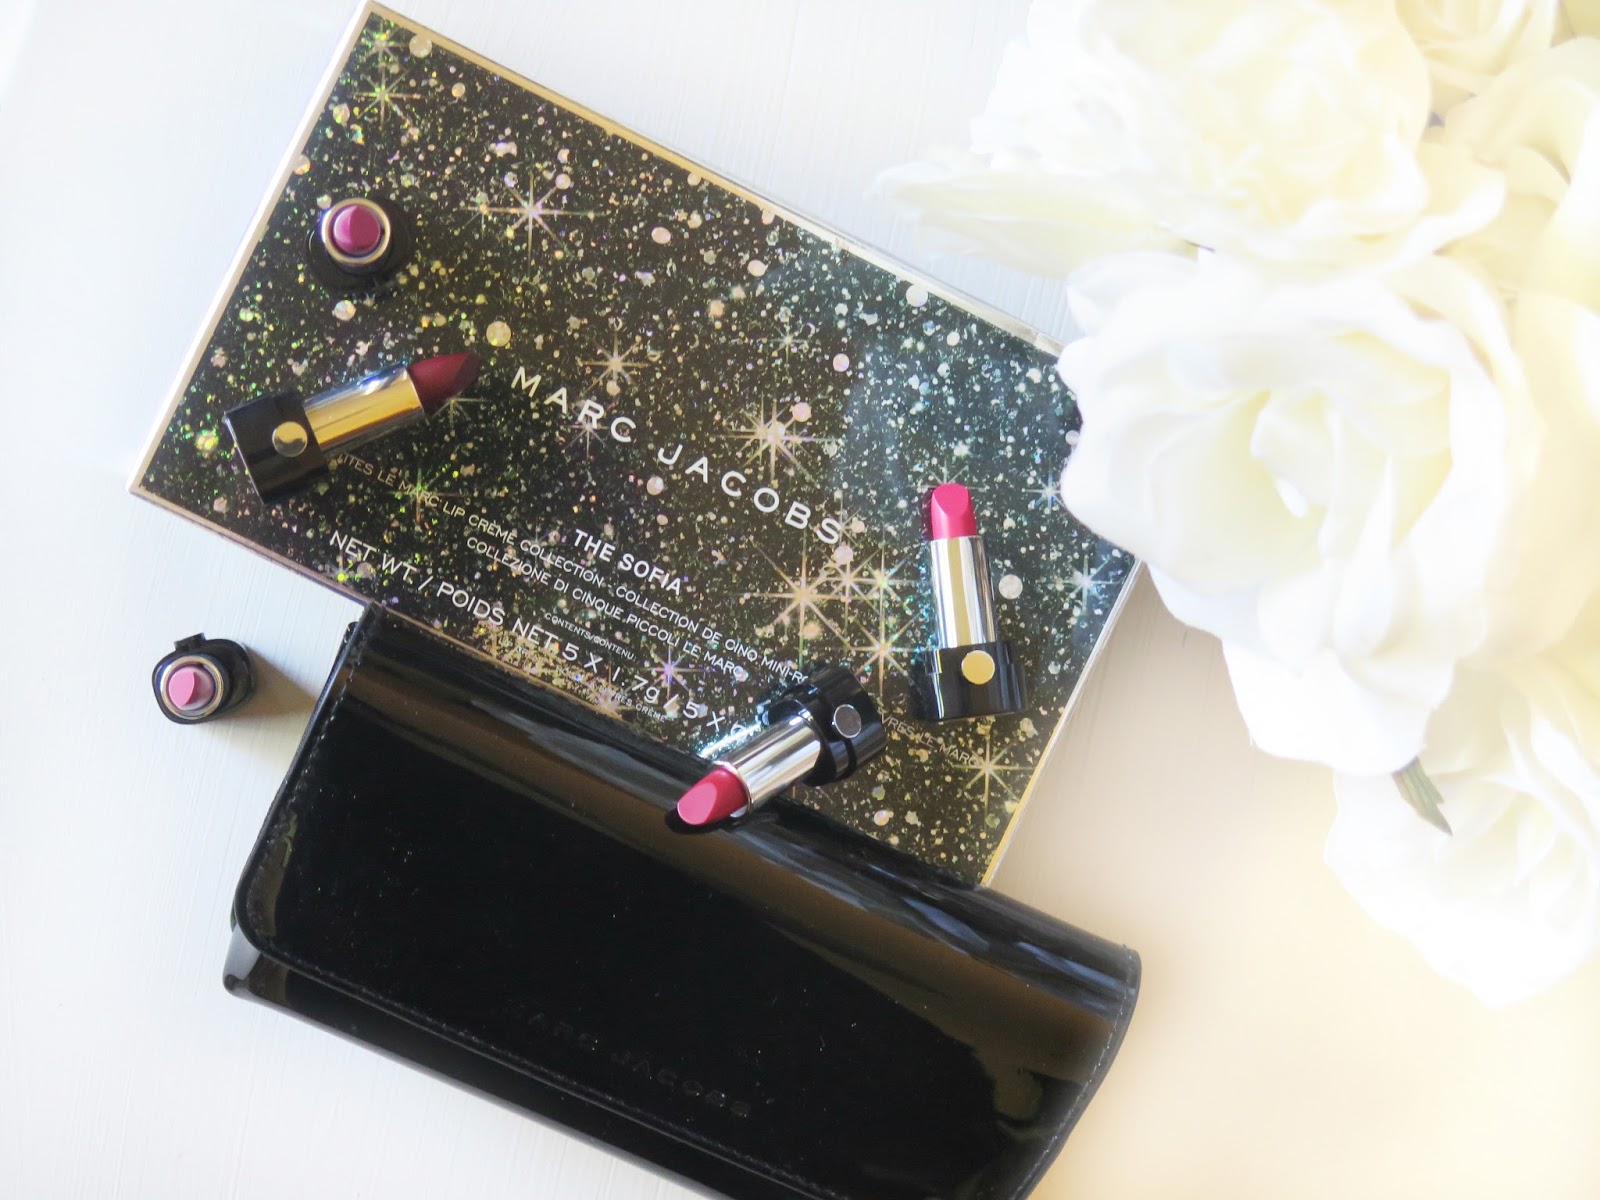 Marc Jacobs La Sofia Petites Le Marc Lip Creme Collection For Holiday 2015 | Review & Swatches | 5 Mini Le Marc Lip Cremes | labellesirene.ca